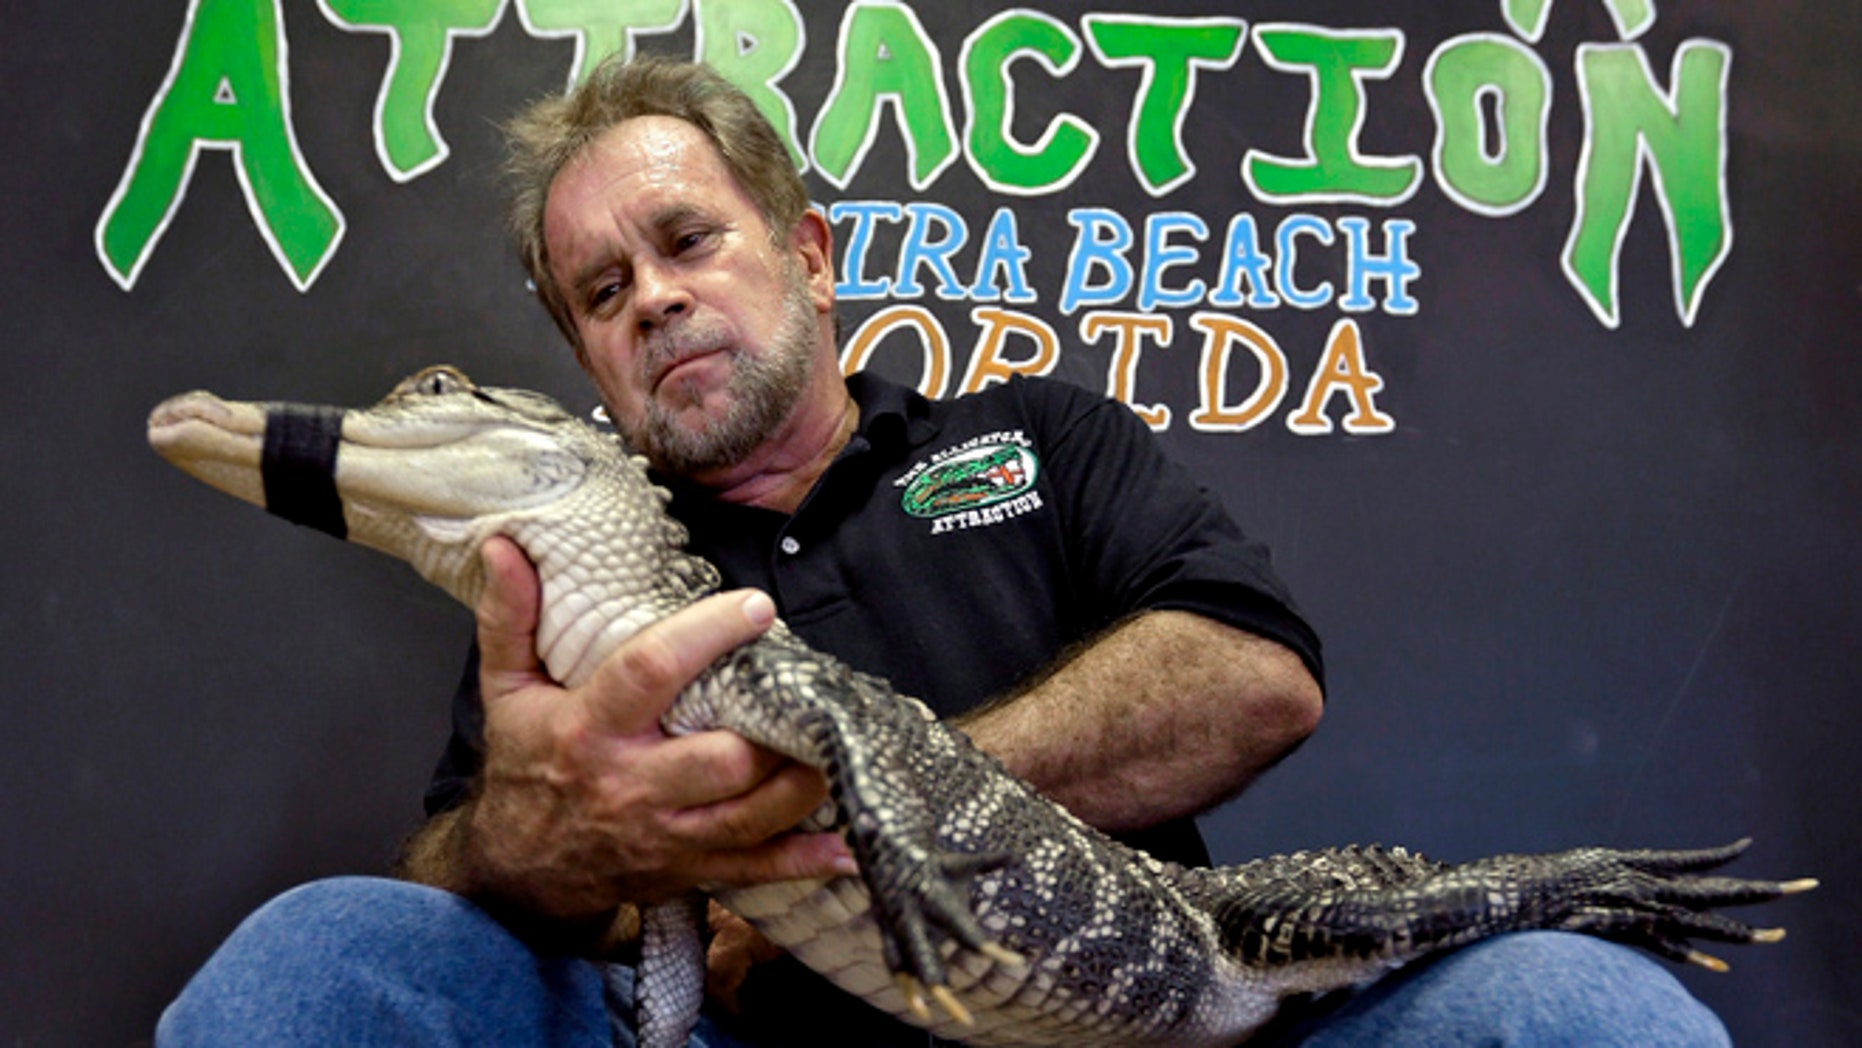 Sept. 26, 2012: Bob Barrett, owner of The Alligator Attraction poses with one of his alligators in Madeira Beach, Fla.